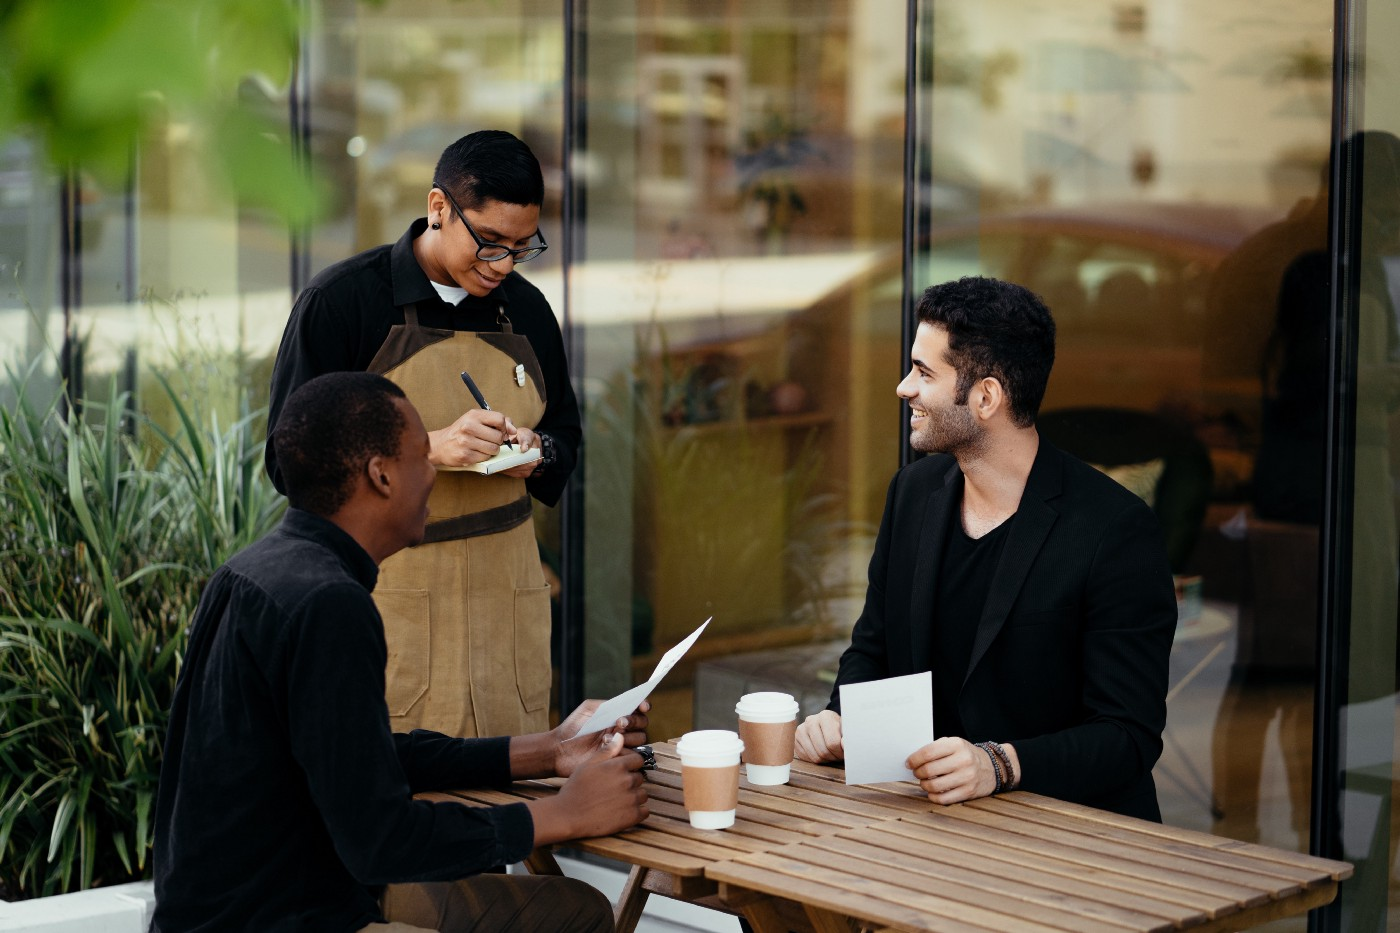 A waiter in a brown apron writes down the order of two men seated at a table with cups of coffee.